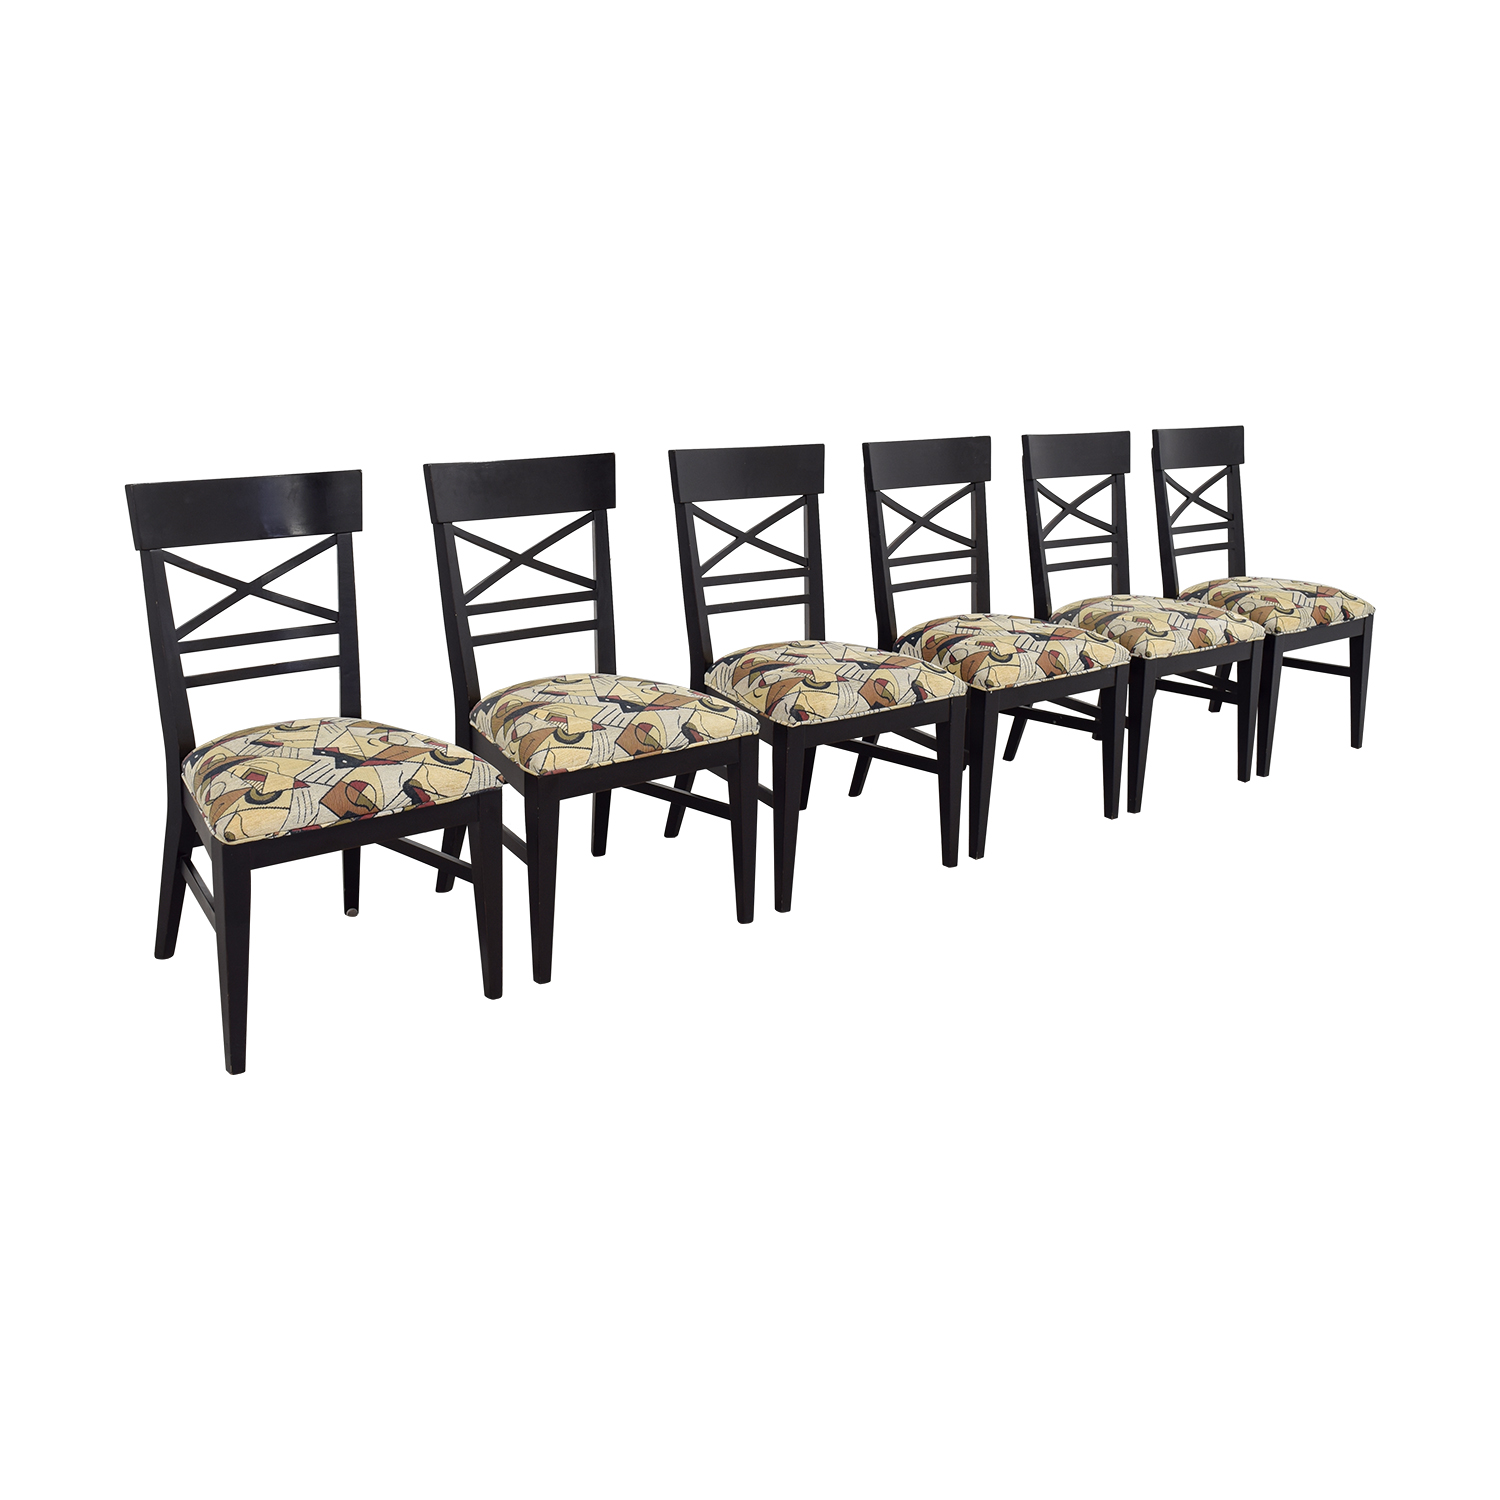 shop Ethan Allan Ethan Allan Geometric Upholstered Dining Chairs online